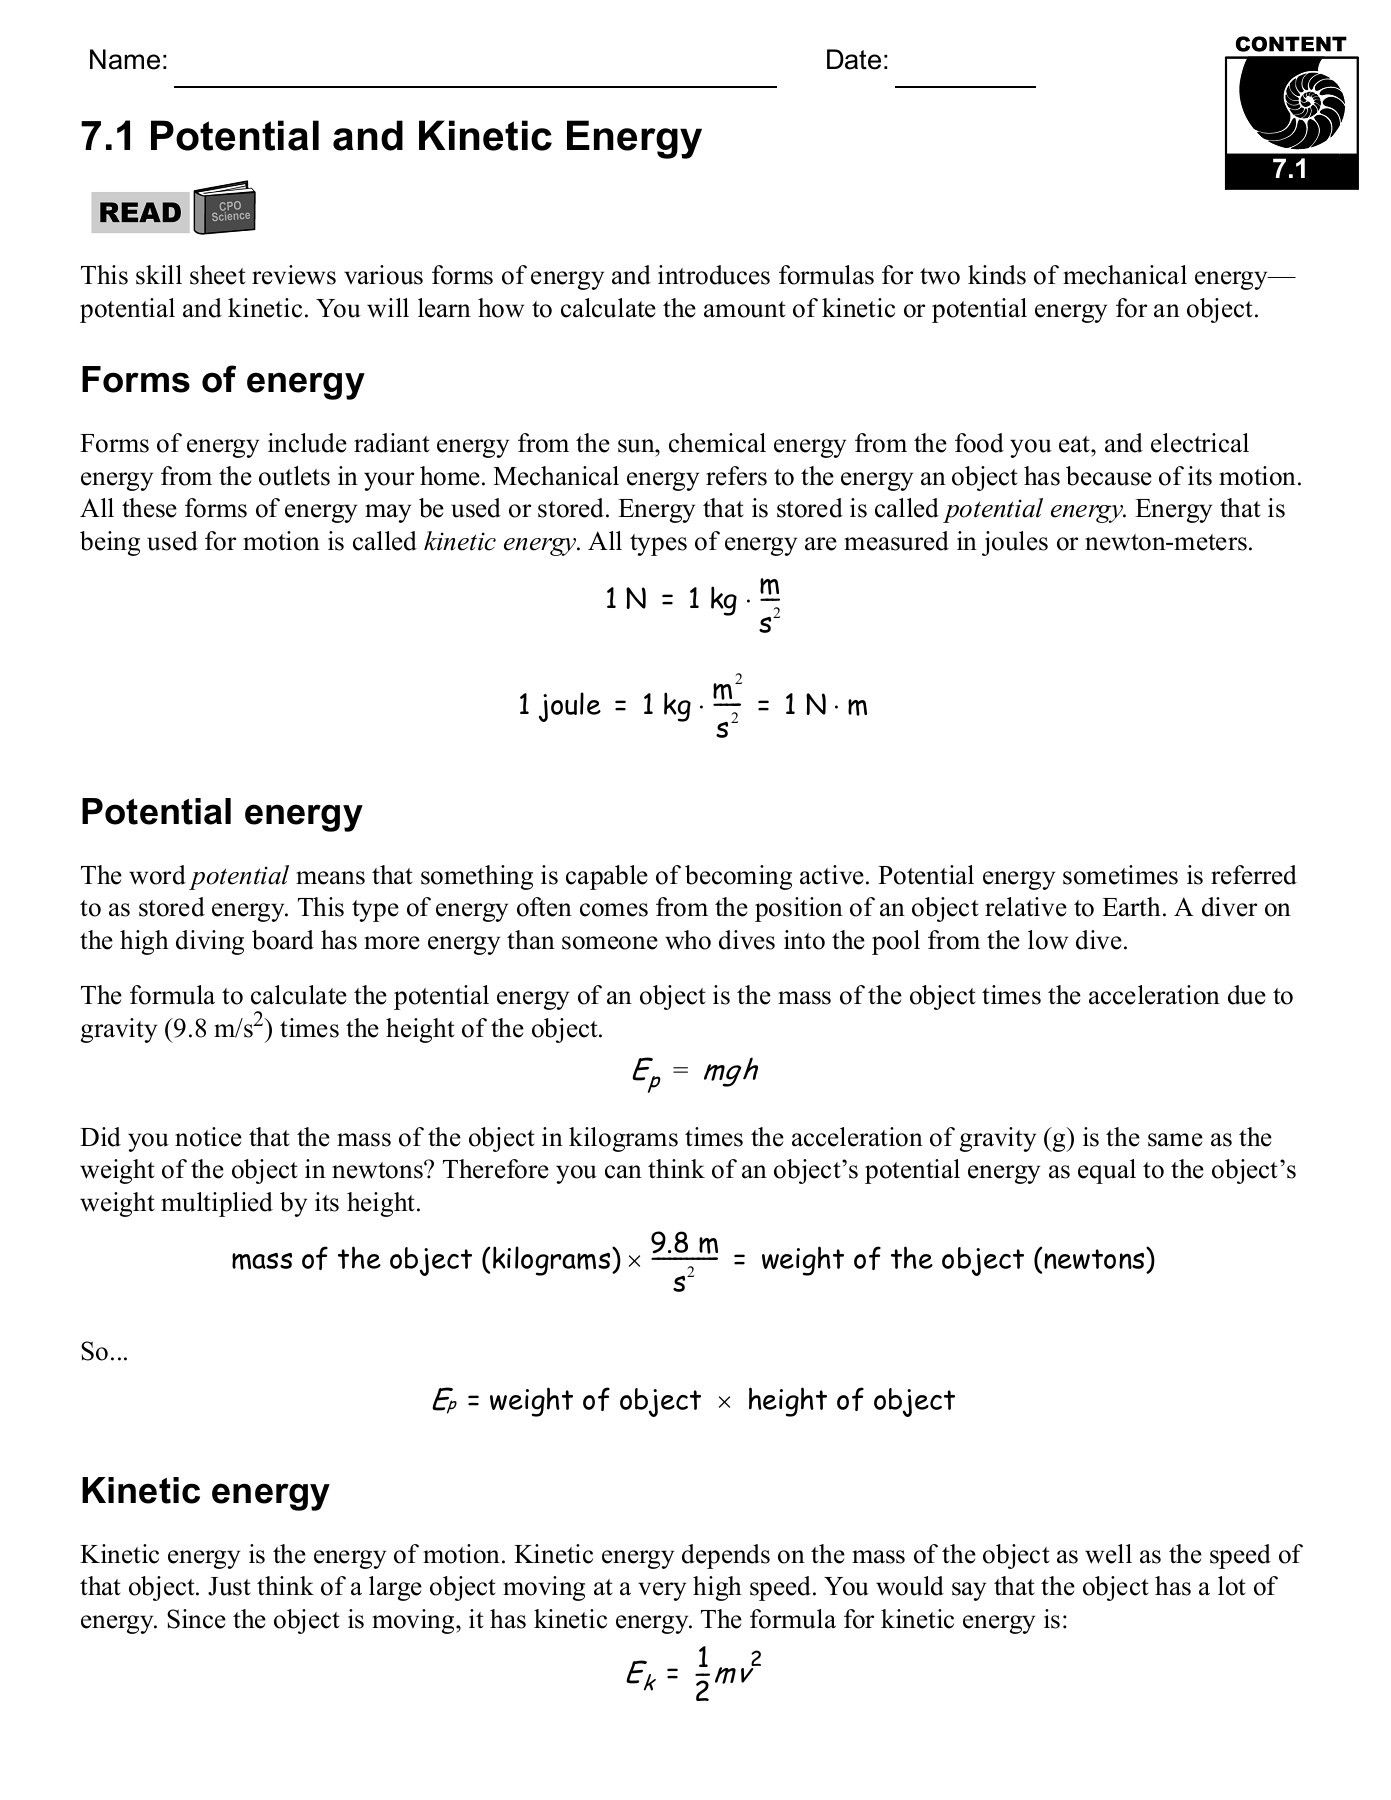 Best Of Potential And Kinetic Energy Worksheet Answers